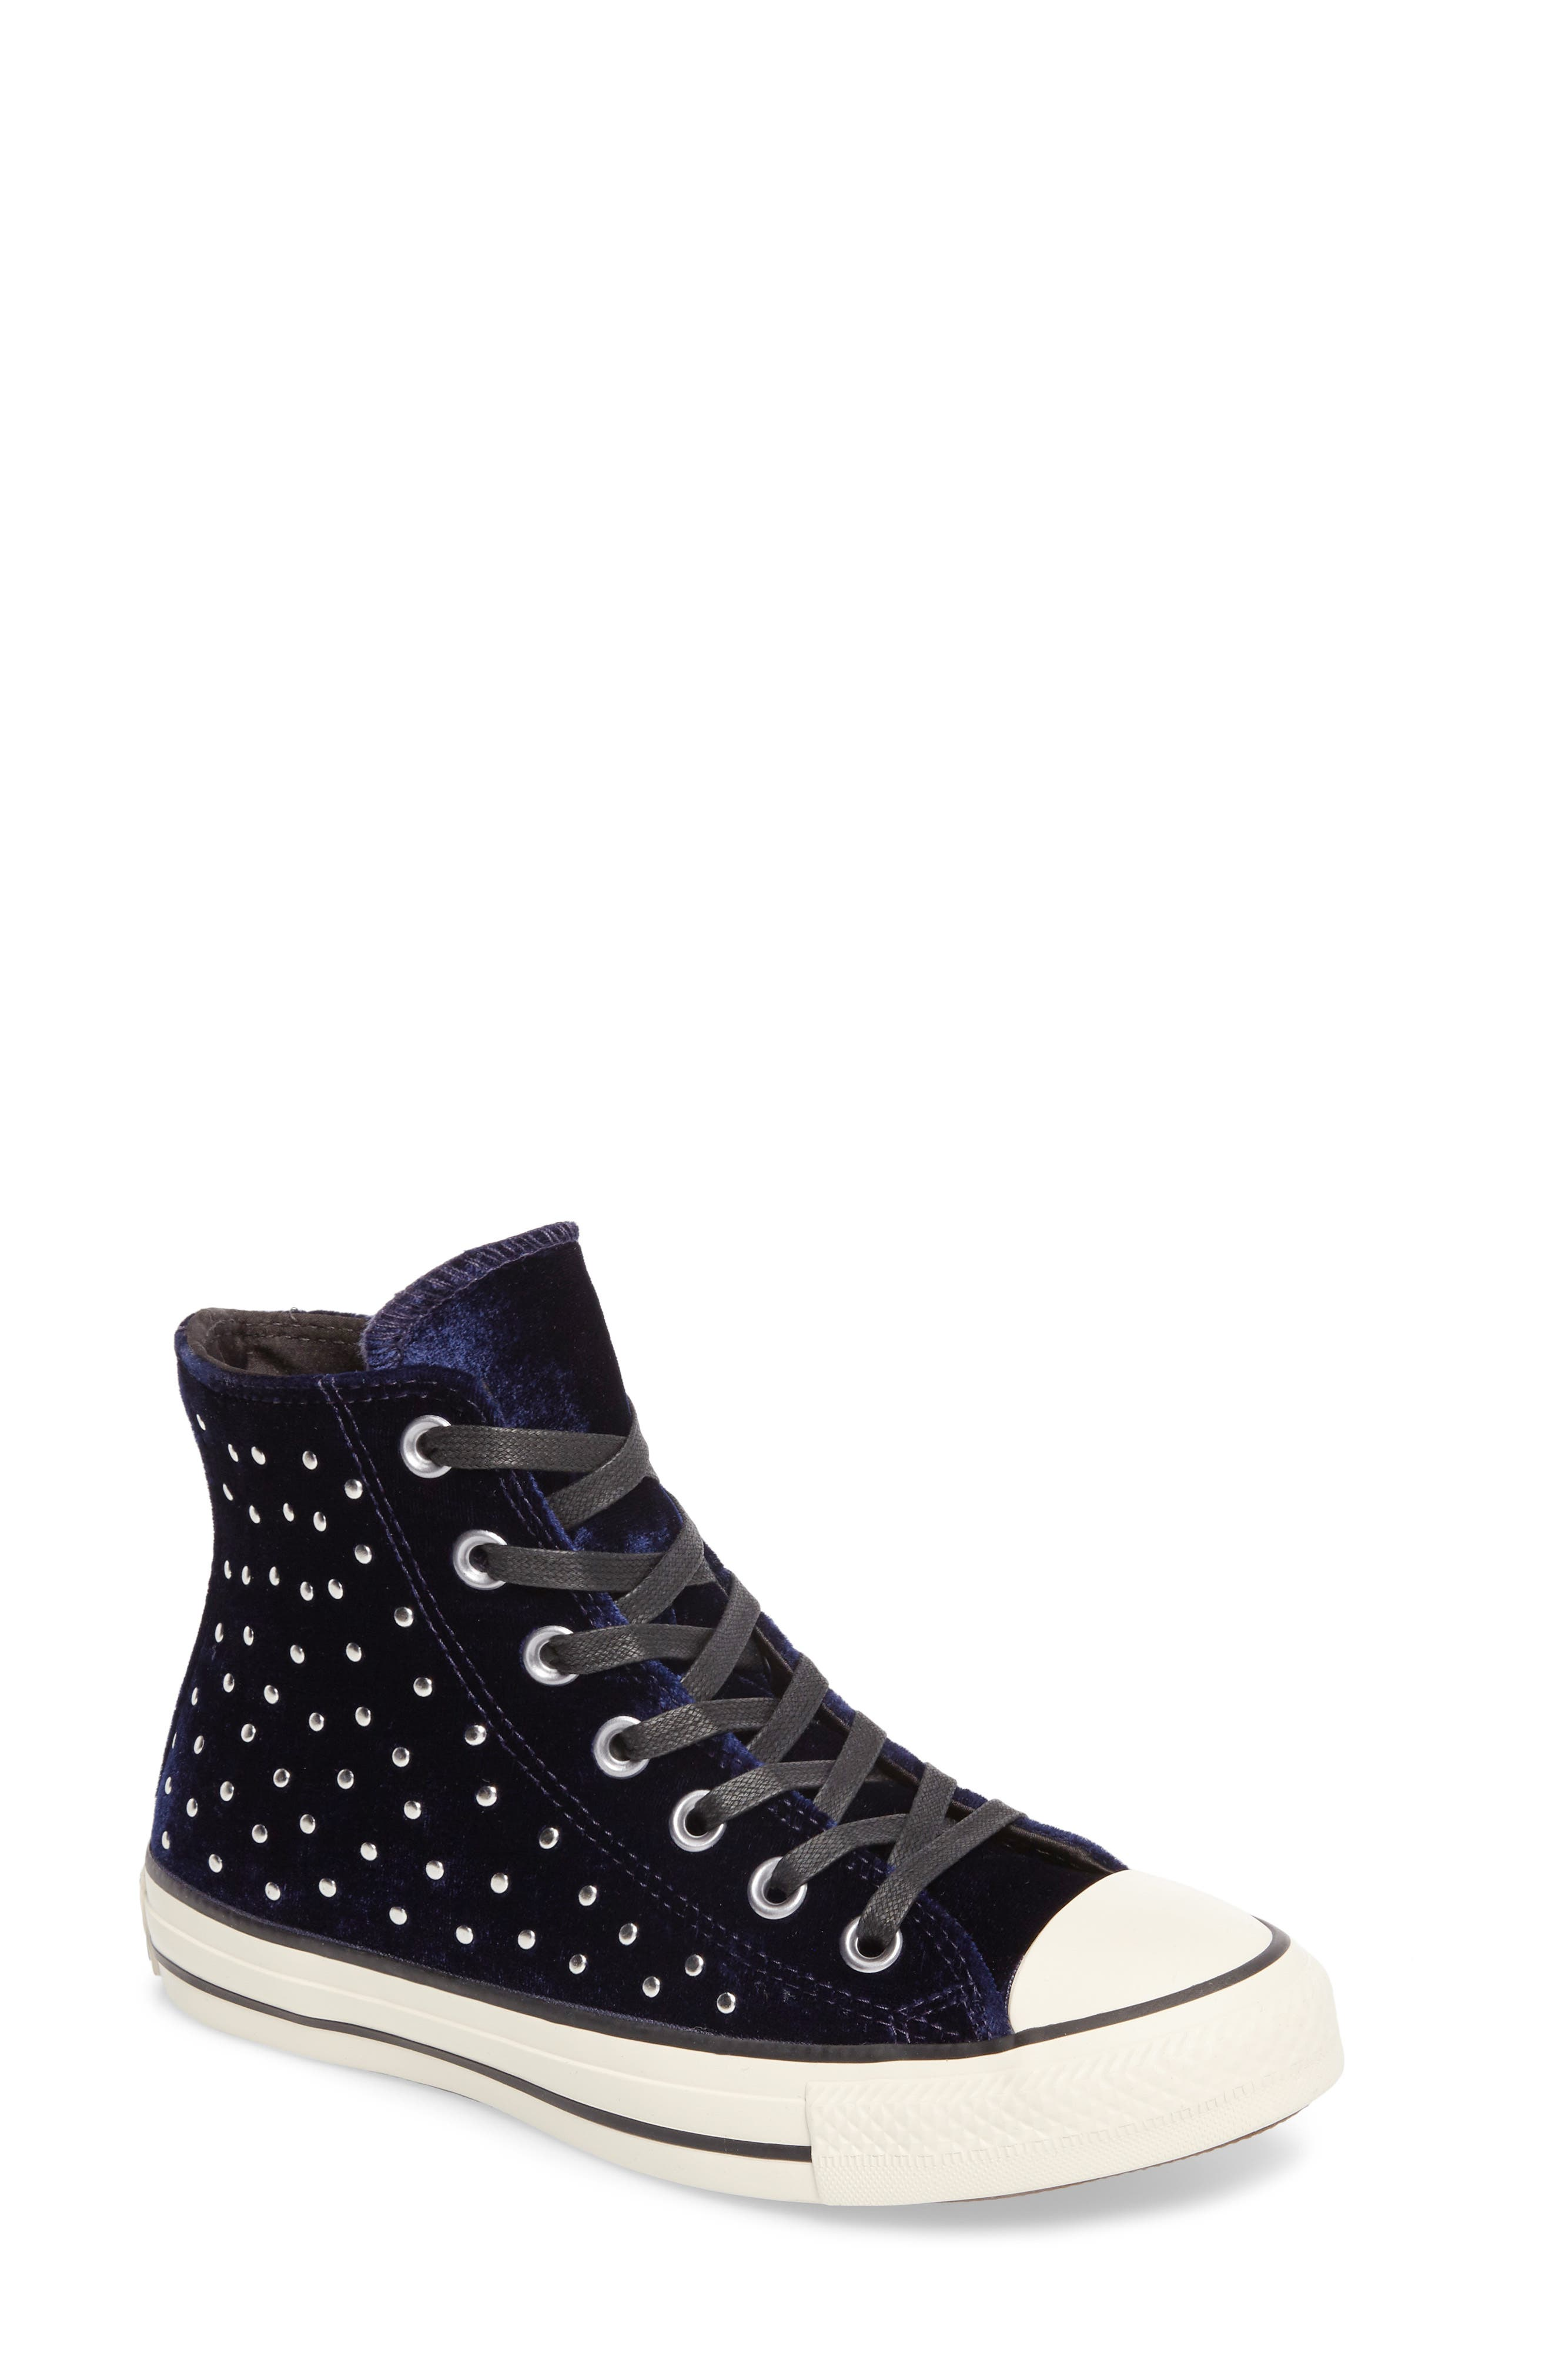 Chuck Taylor<sup>®</sup> All Star<sup>®</sup> Studded High Top Sneakers,                             Main thumbnail 1, color,                             Eclipse Velvet